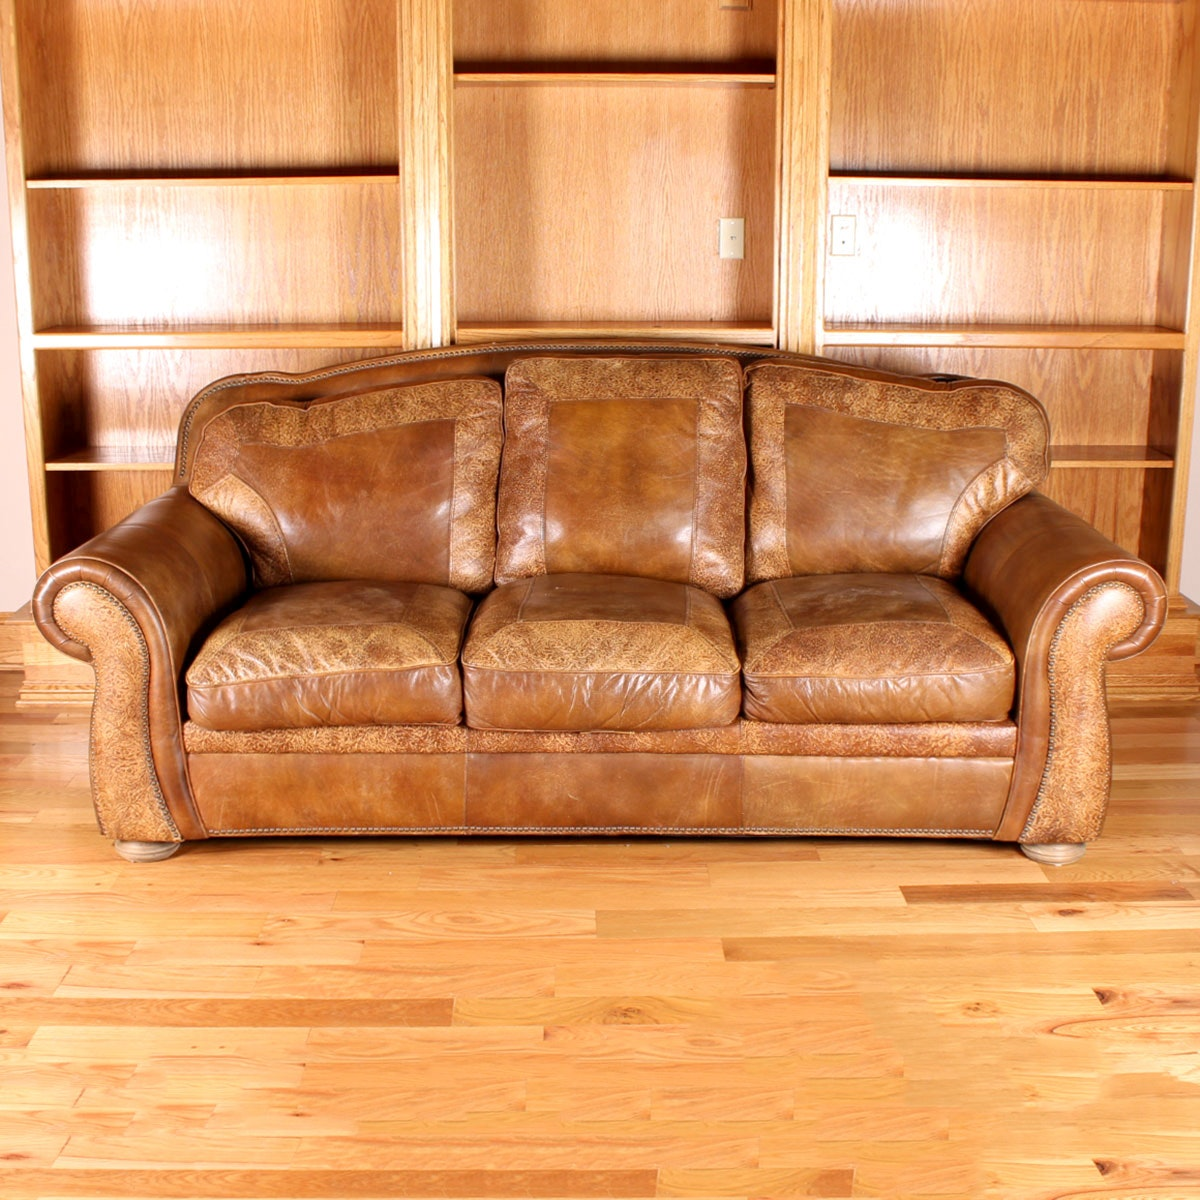 Plush Leather Sofa with Western Appeal